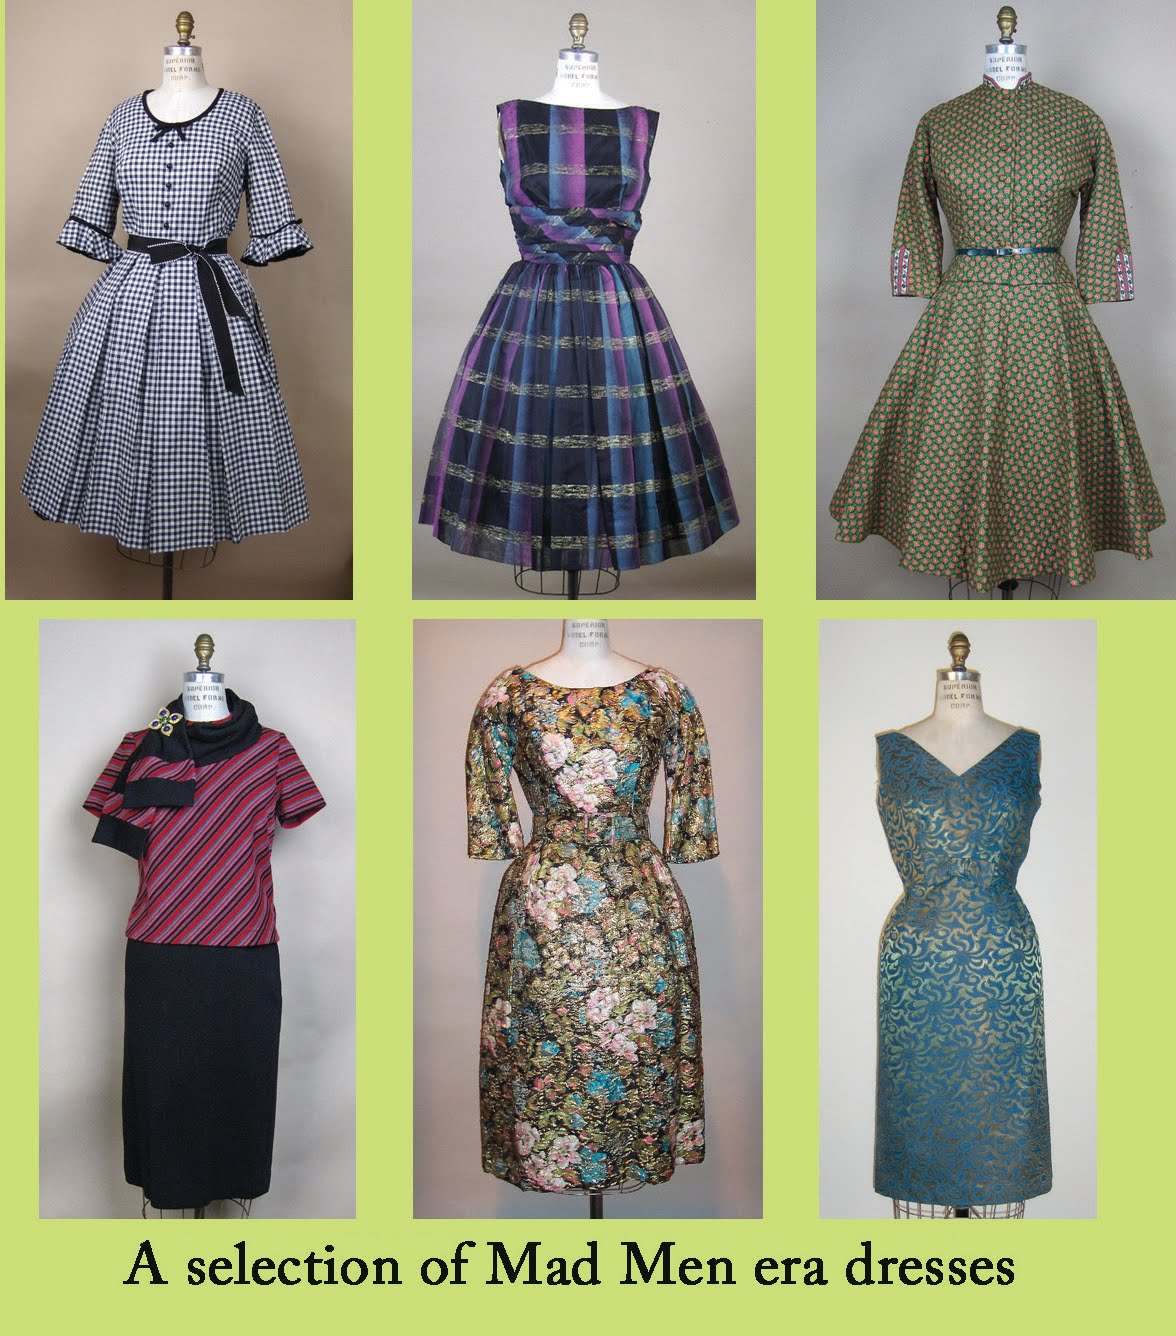 A Vintage Ramble: How to dress for that Mad Men Party